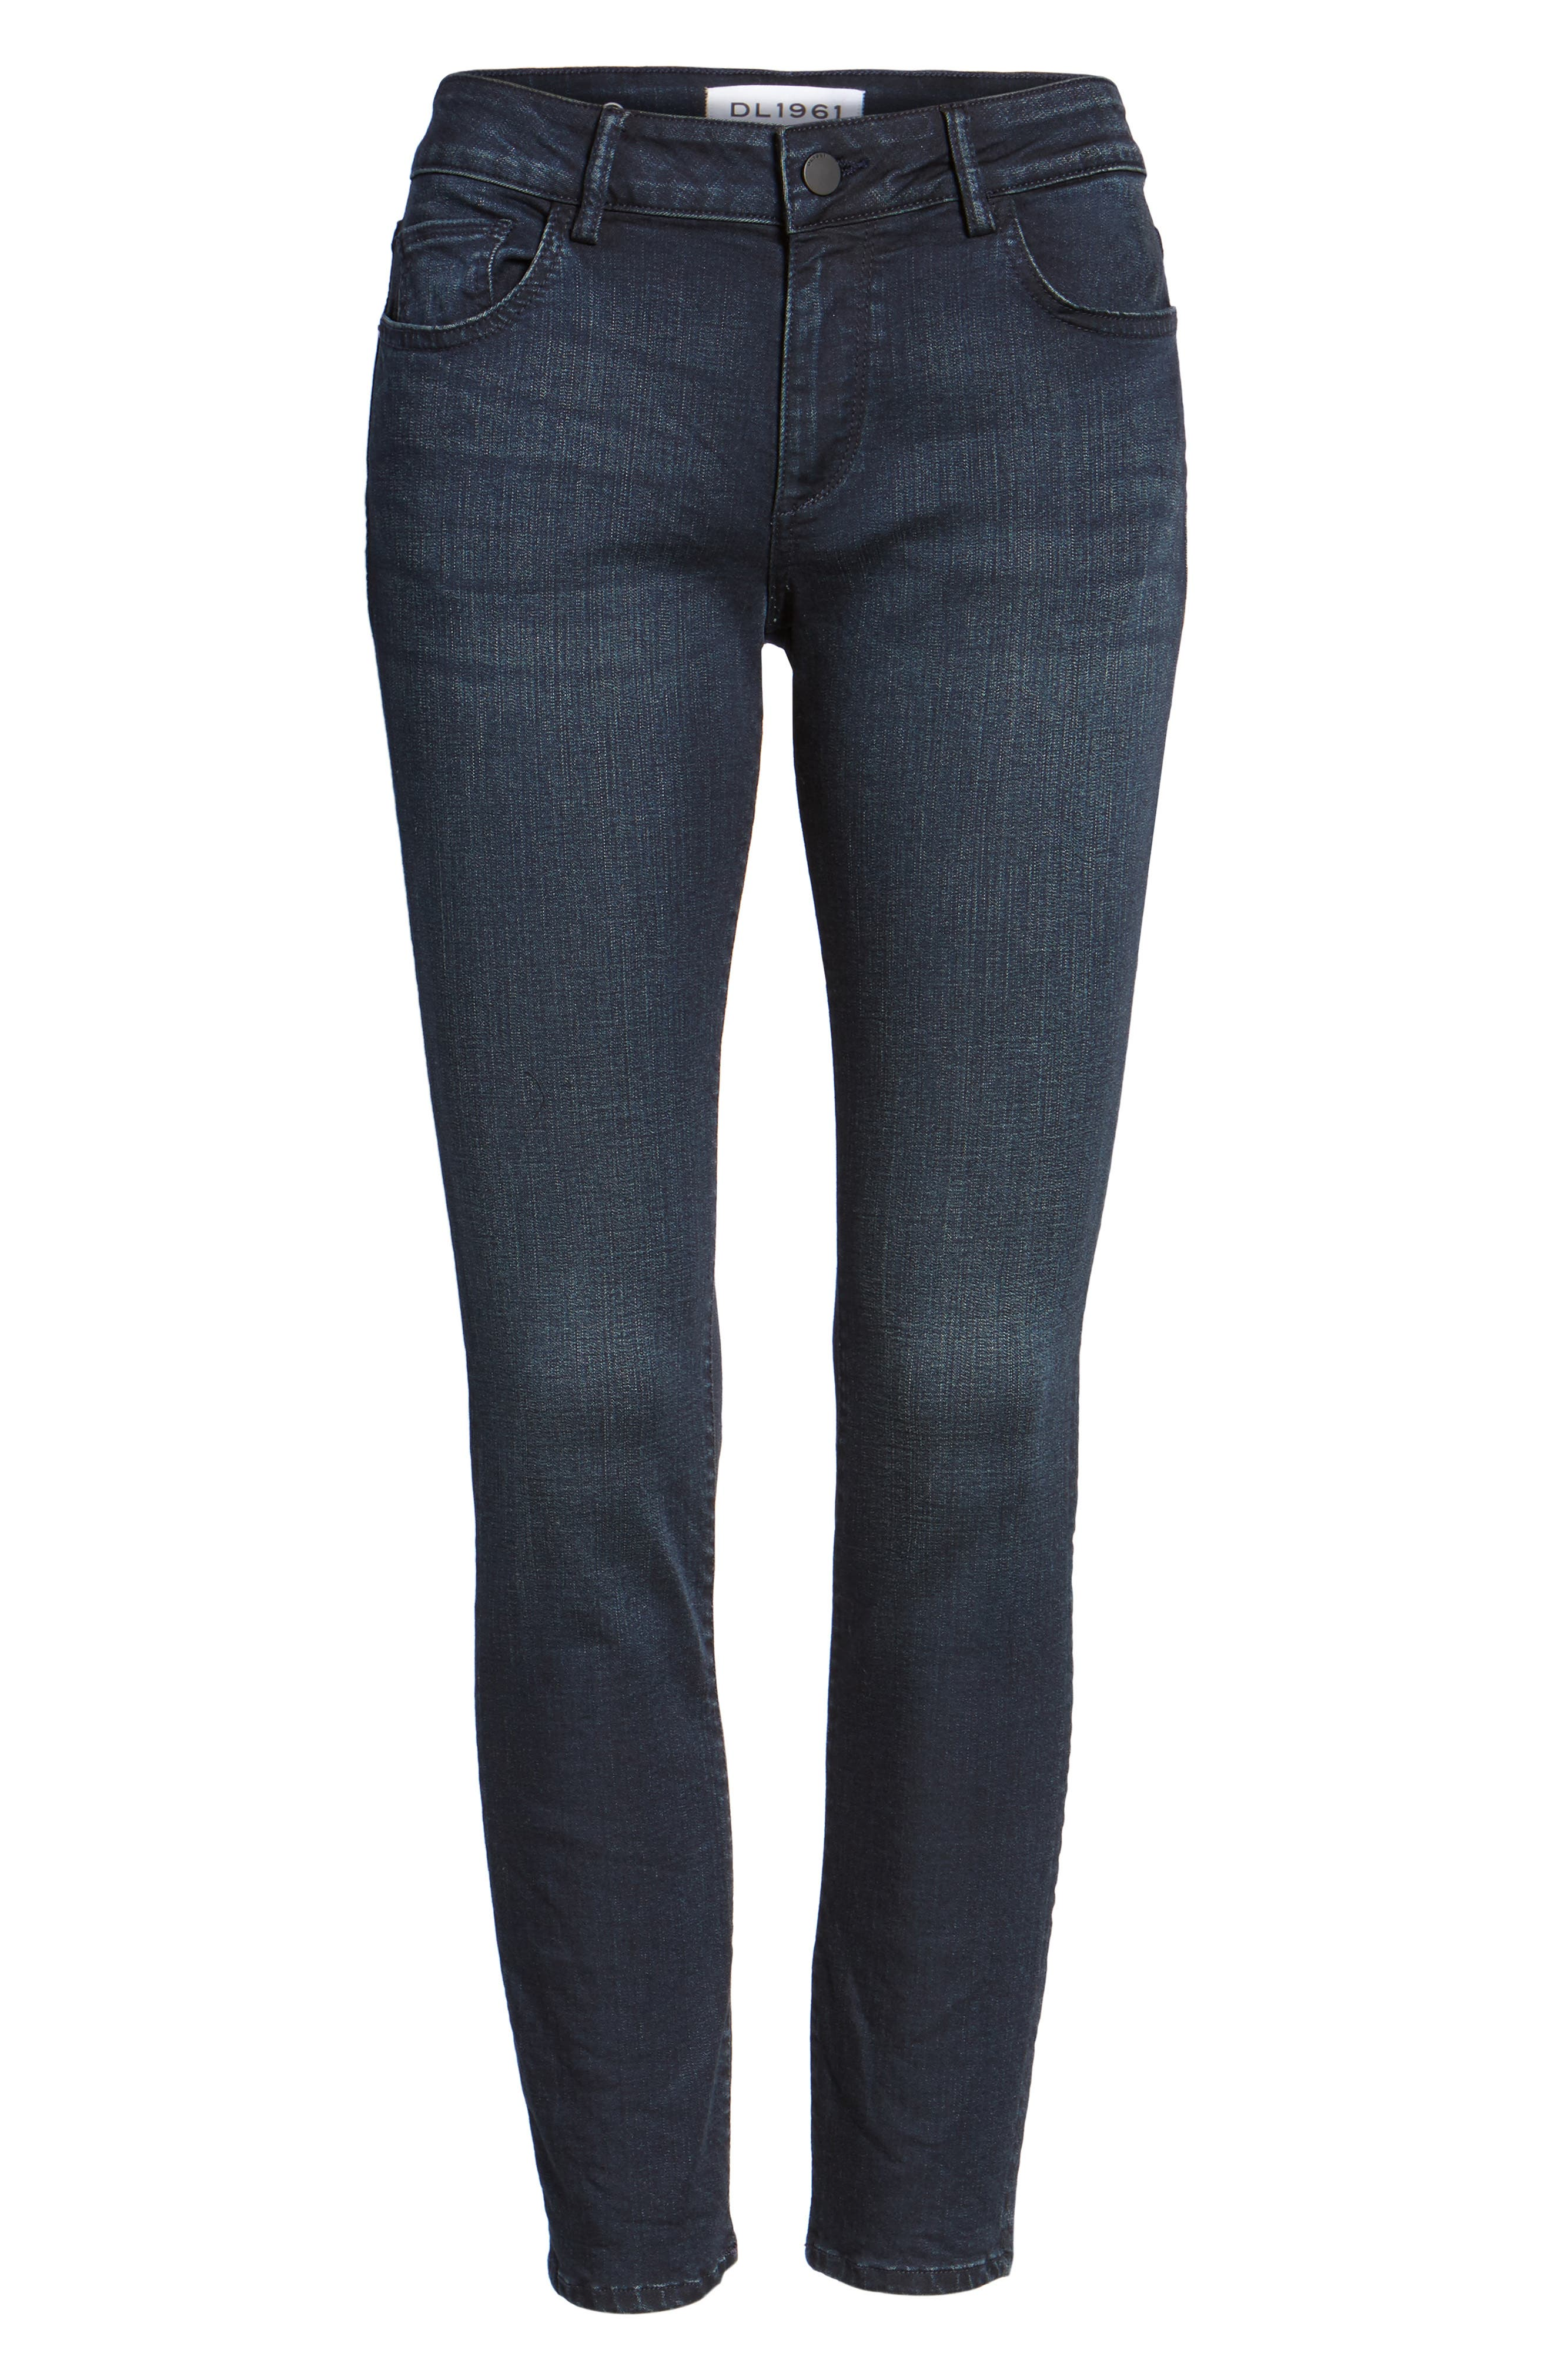 Coco Curvy Skinny Ankle Jeans,                             Alternate thumbnail 6, color,